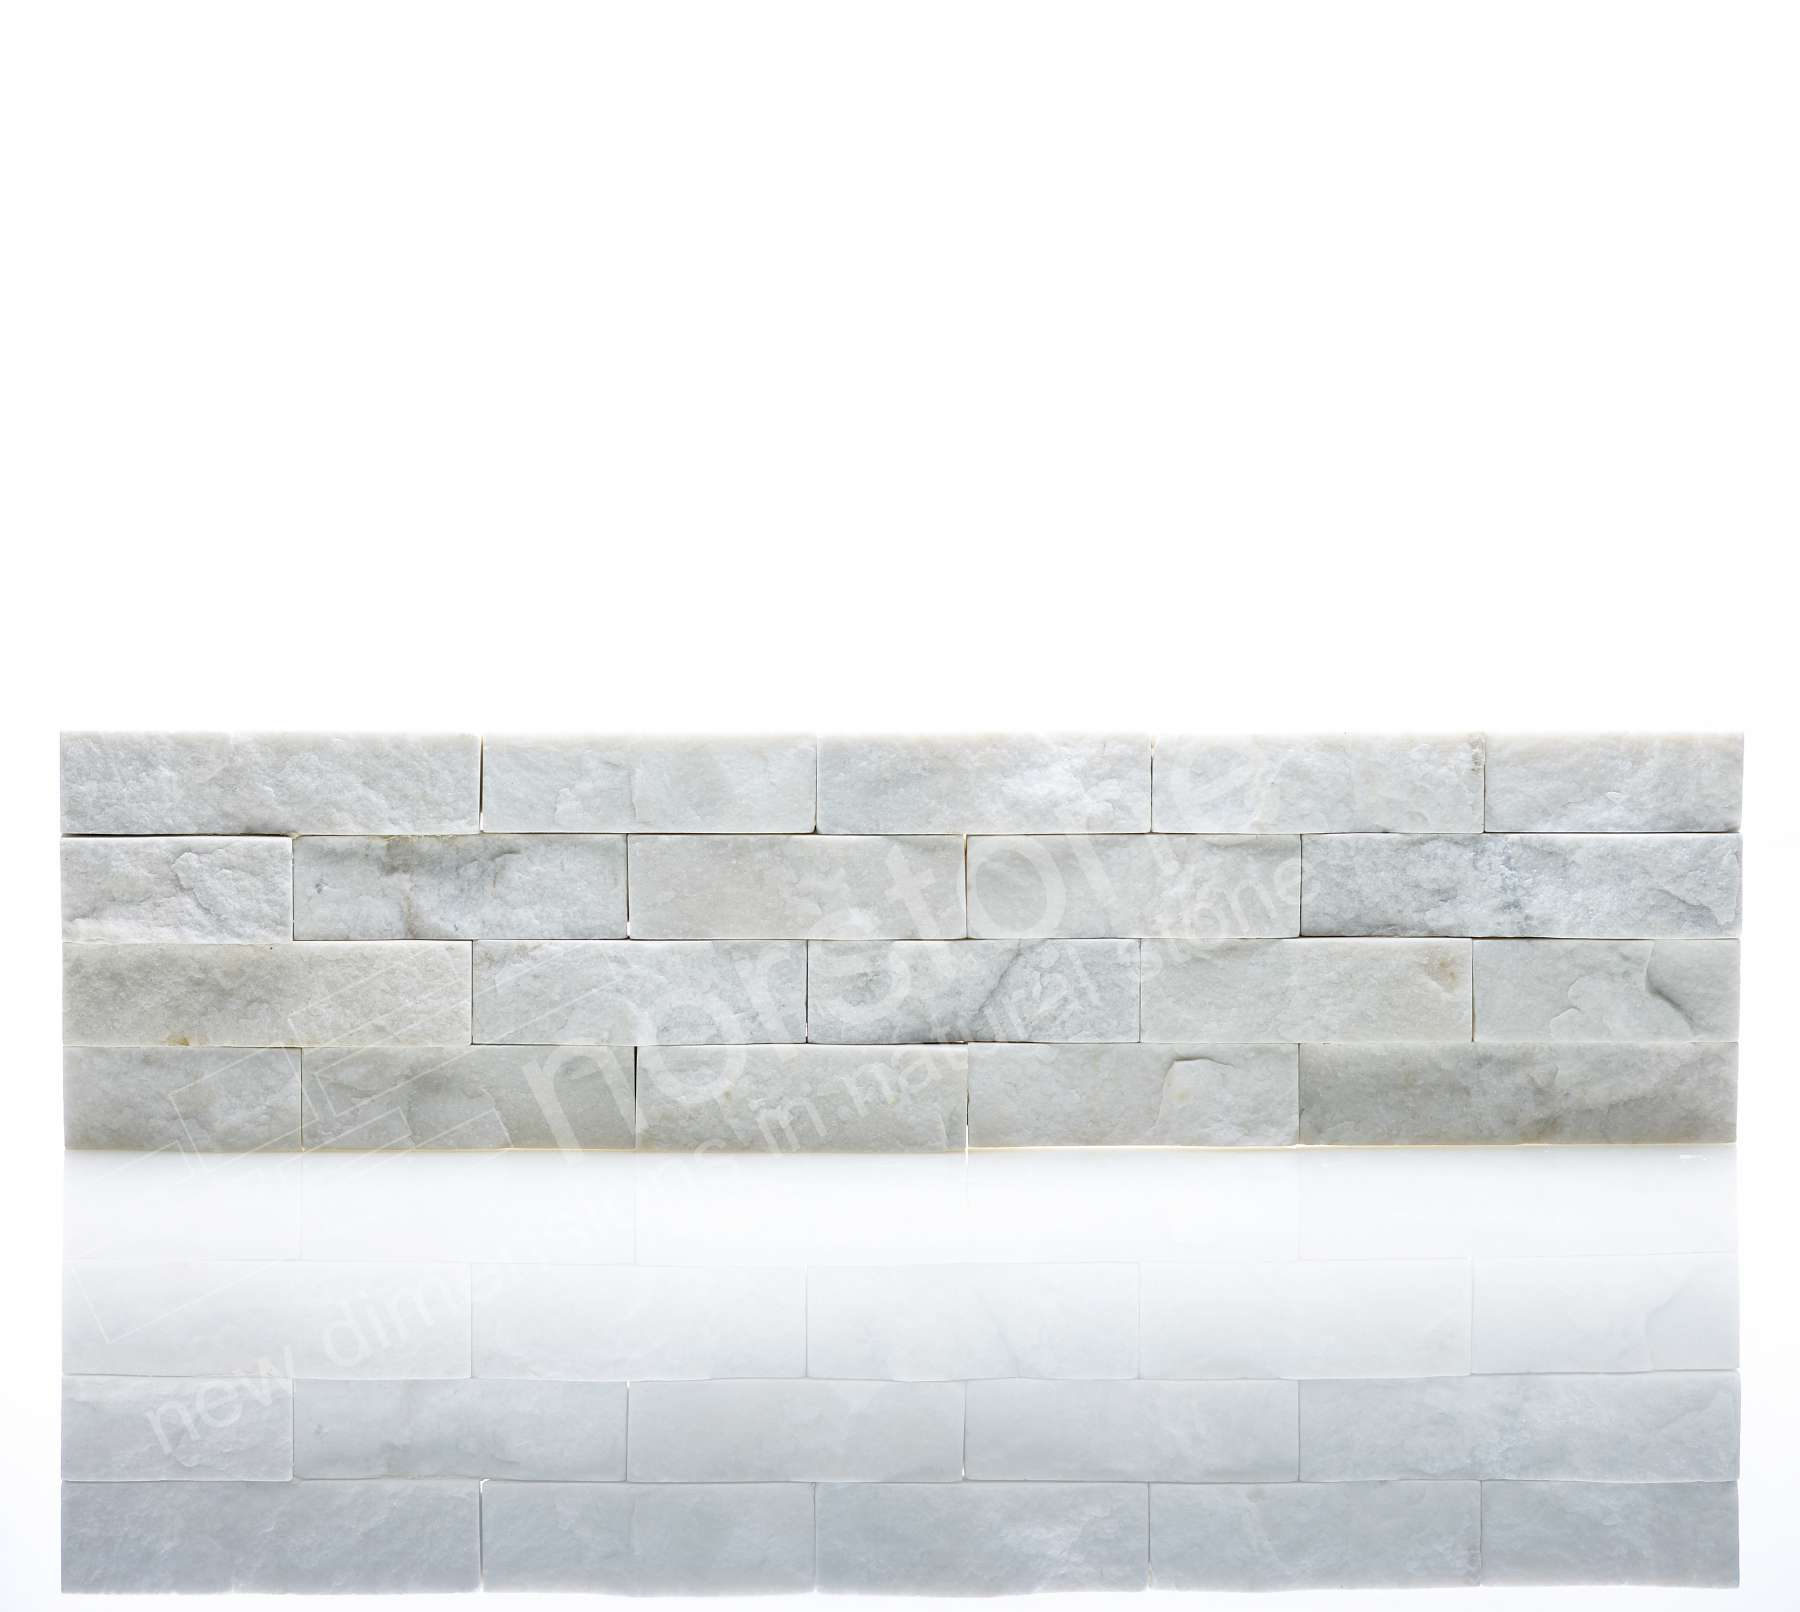 Norstone White Rock Panel stone veneer panel system